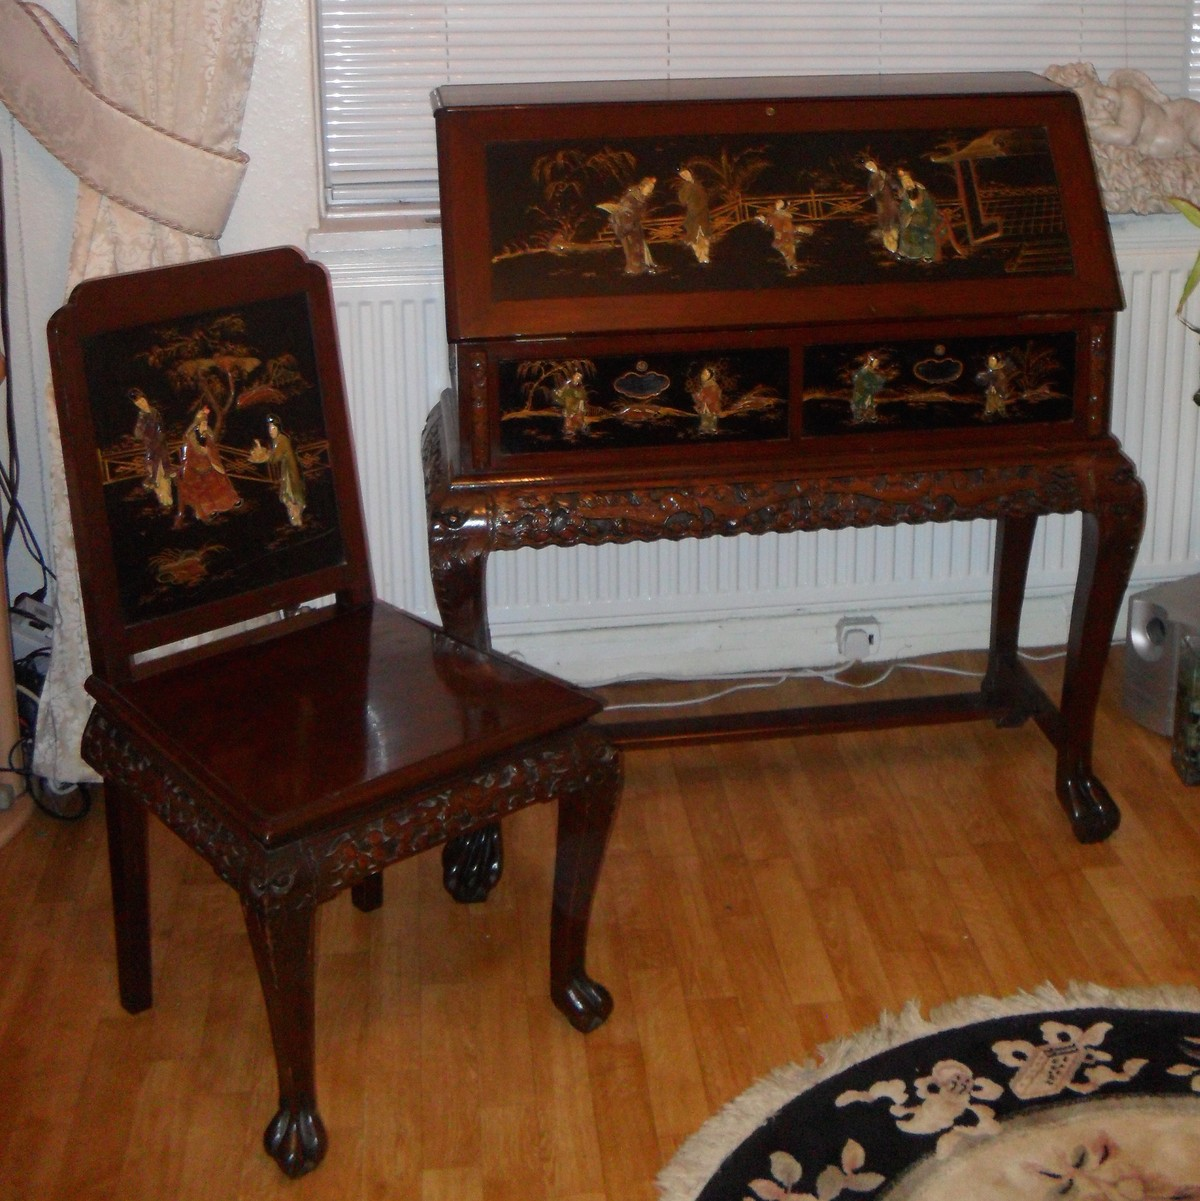 Secondhand Chairs And Tables Desks And Bureaus Antique Oriental Furniture